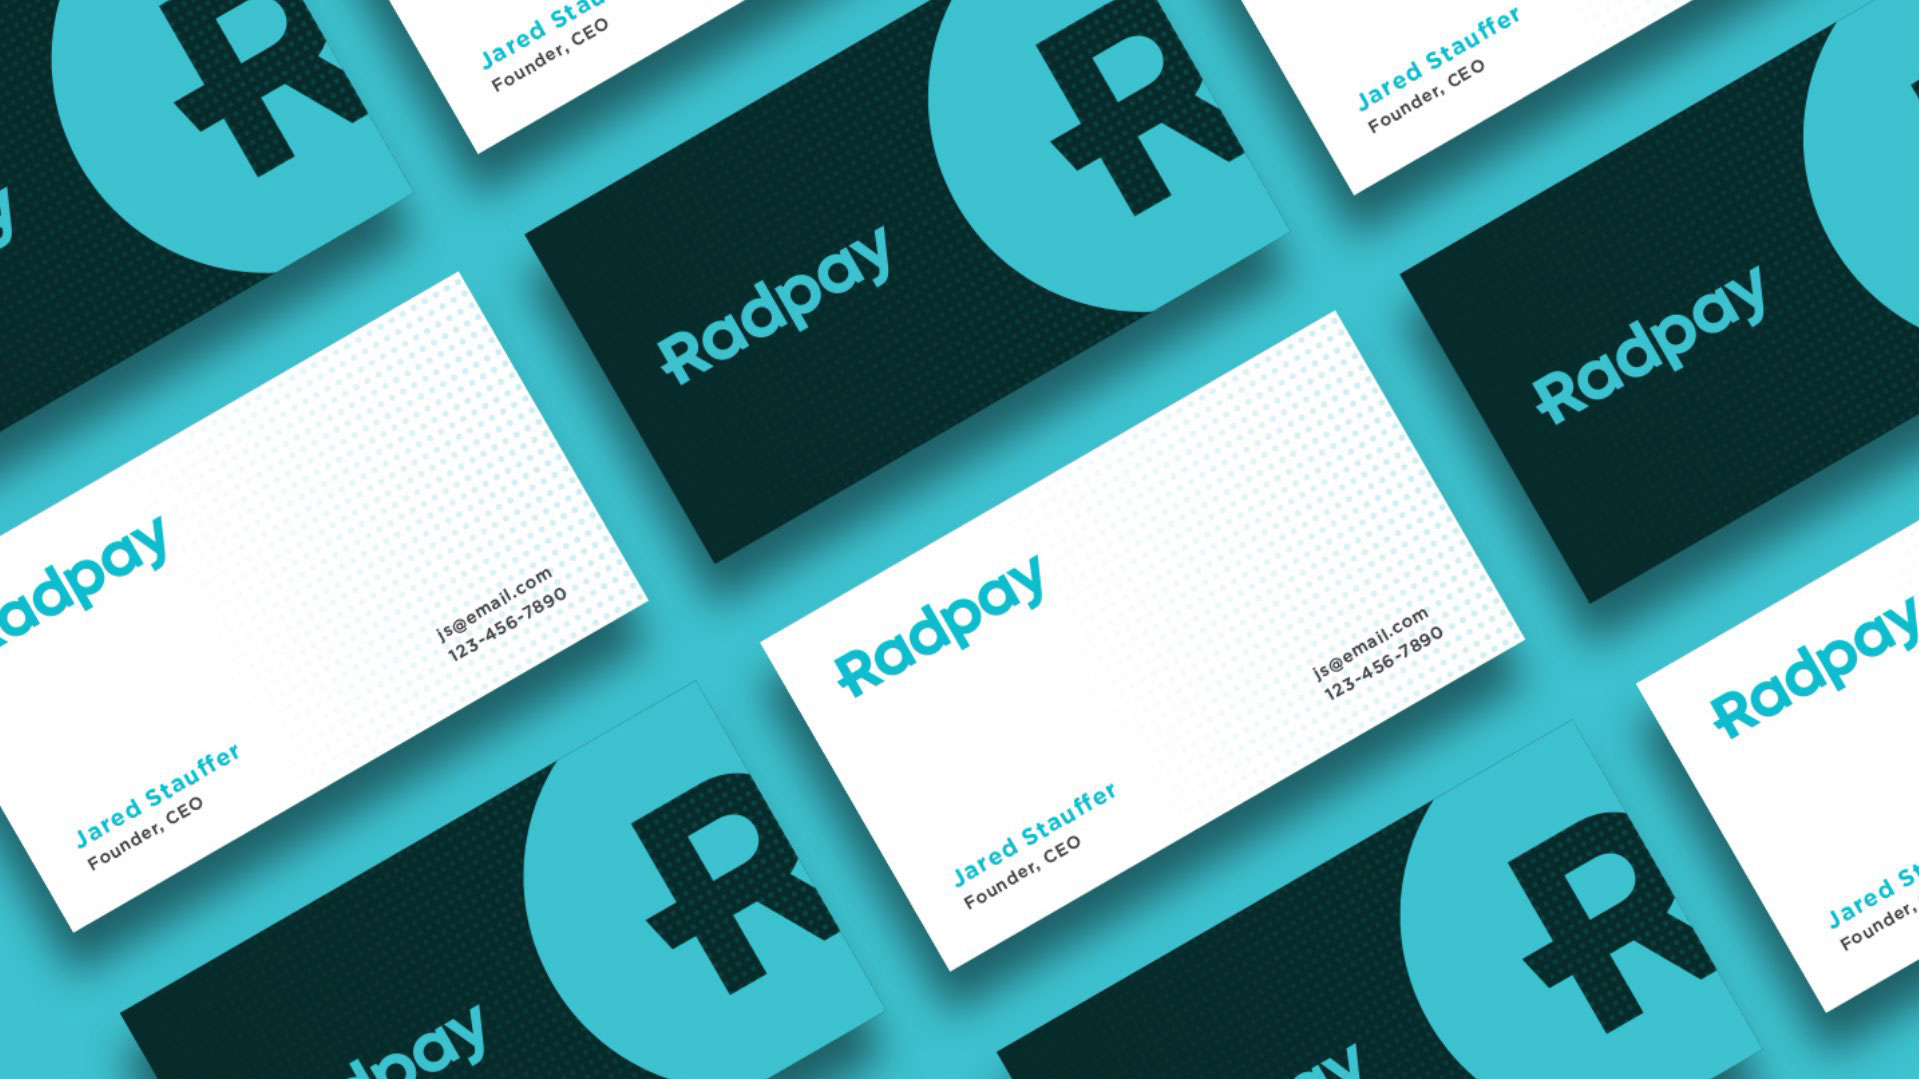 Radpay business cards